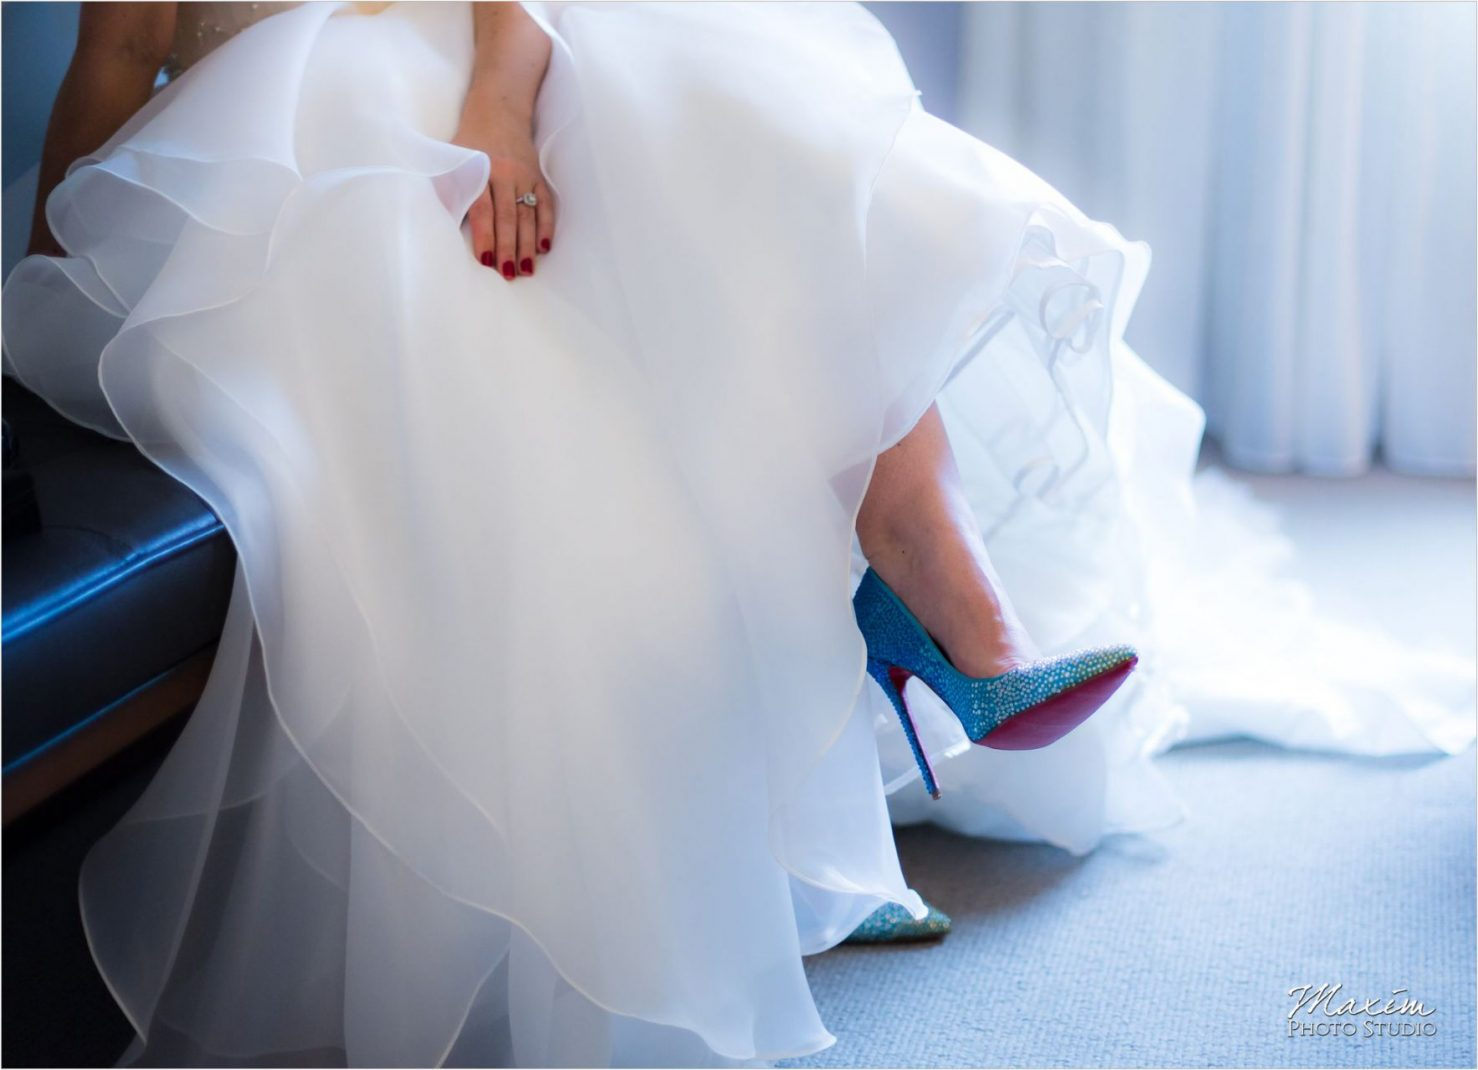 Cincinnati Wedding Photographers 21C Museum Hotel bride wedding preparations Louboutin shoes